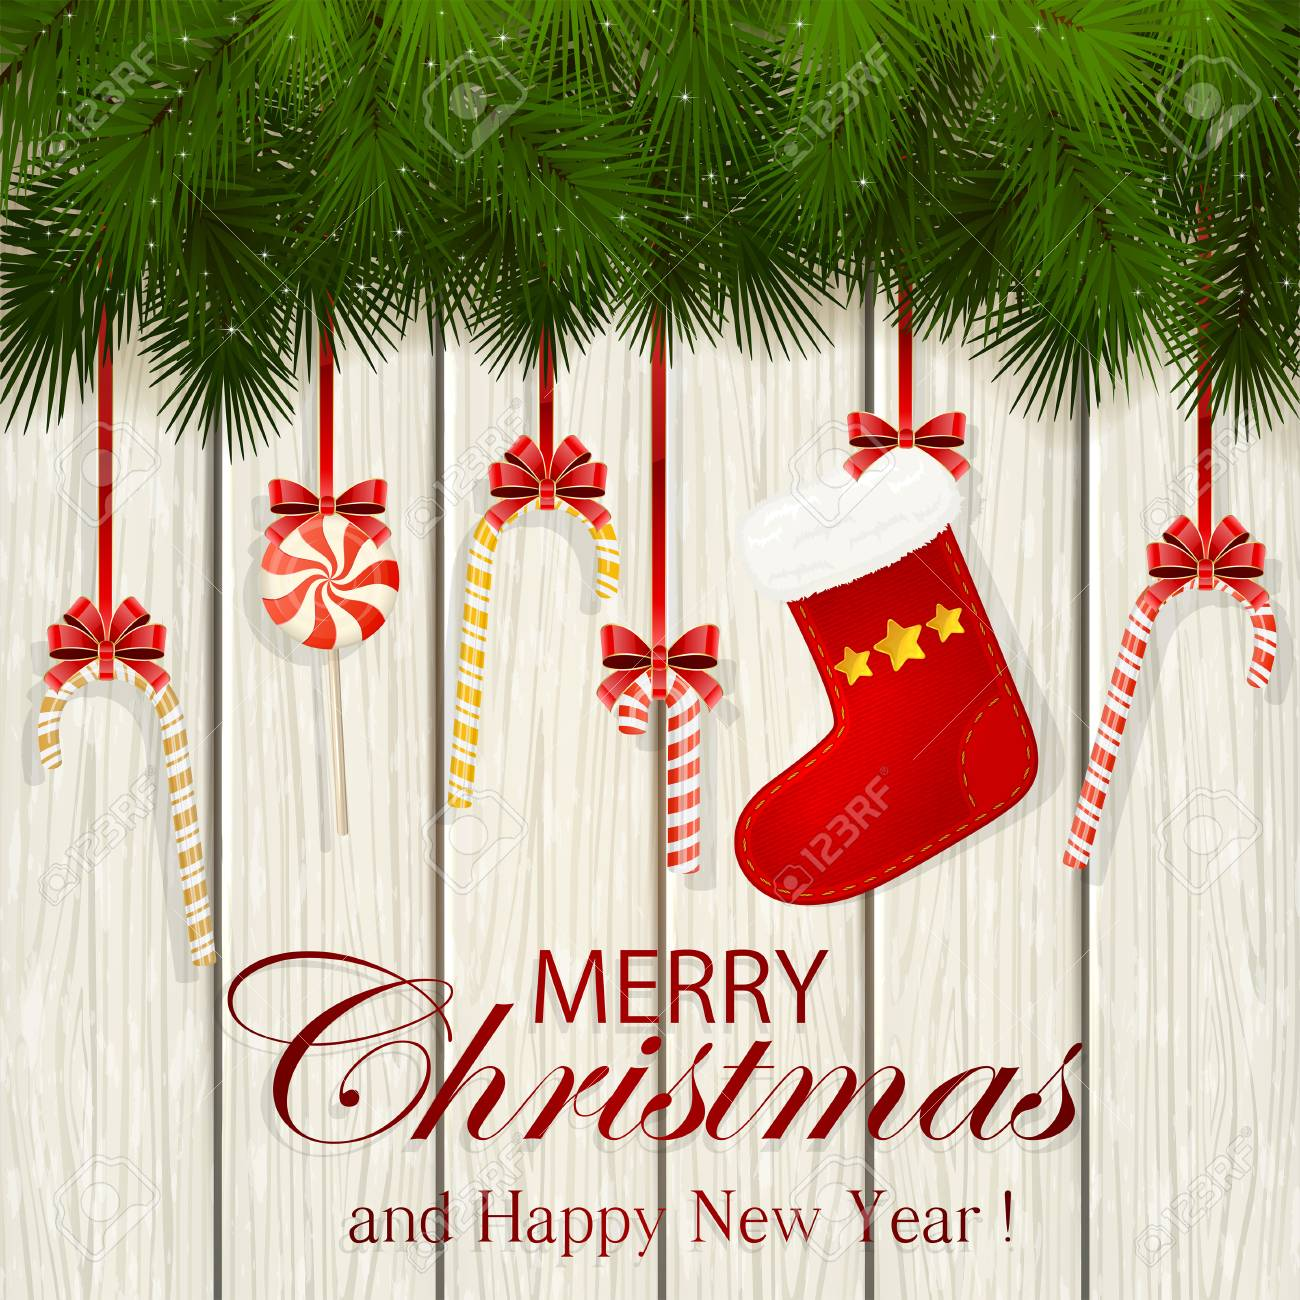 2e24c0f3fd59 Inscription Merry Christmas and Happy New Year with decorative spruce  branches, red Christmas sock and